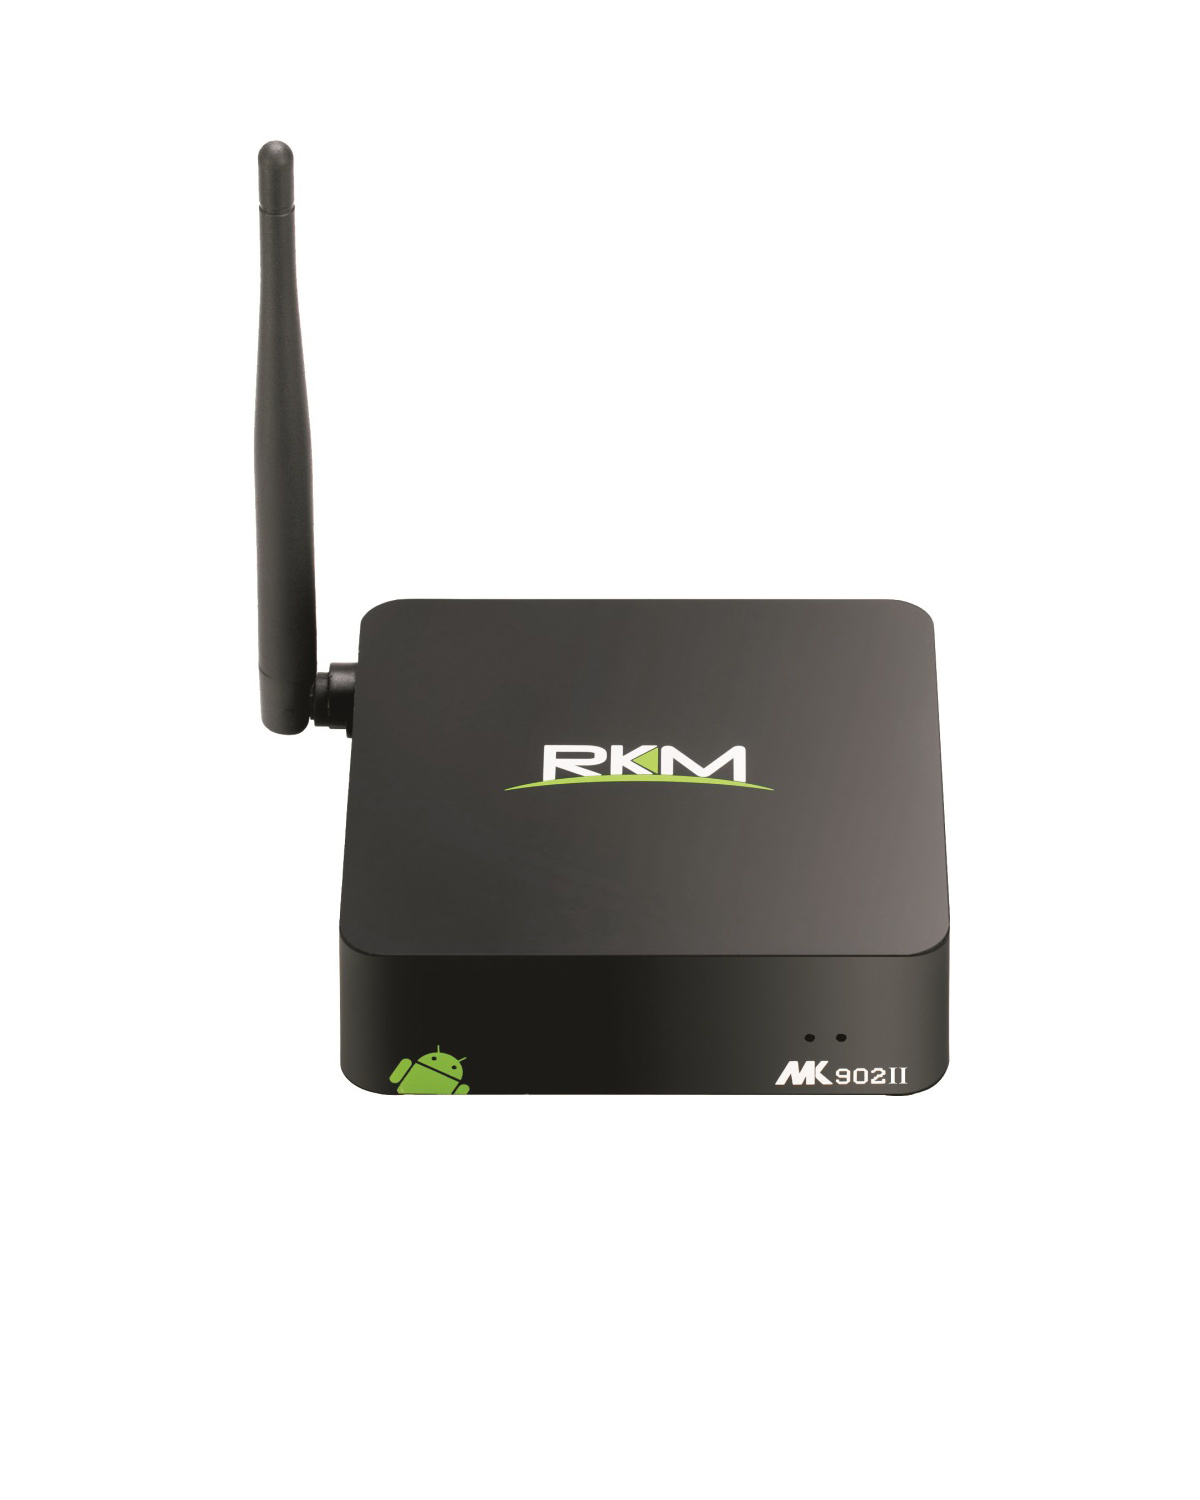 Quad Core 4k Android 4.4 TV Box with WiFi Kodi H. 265 (Mk902II)